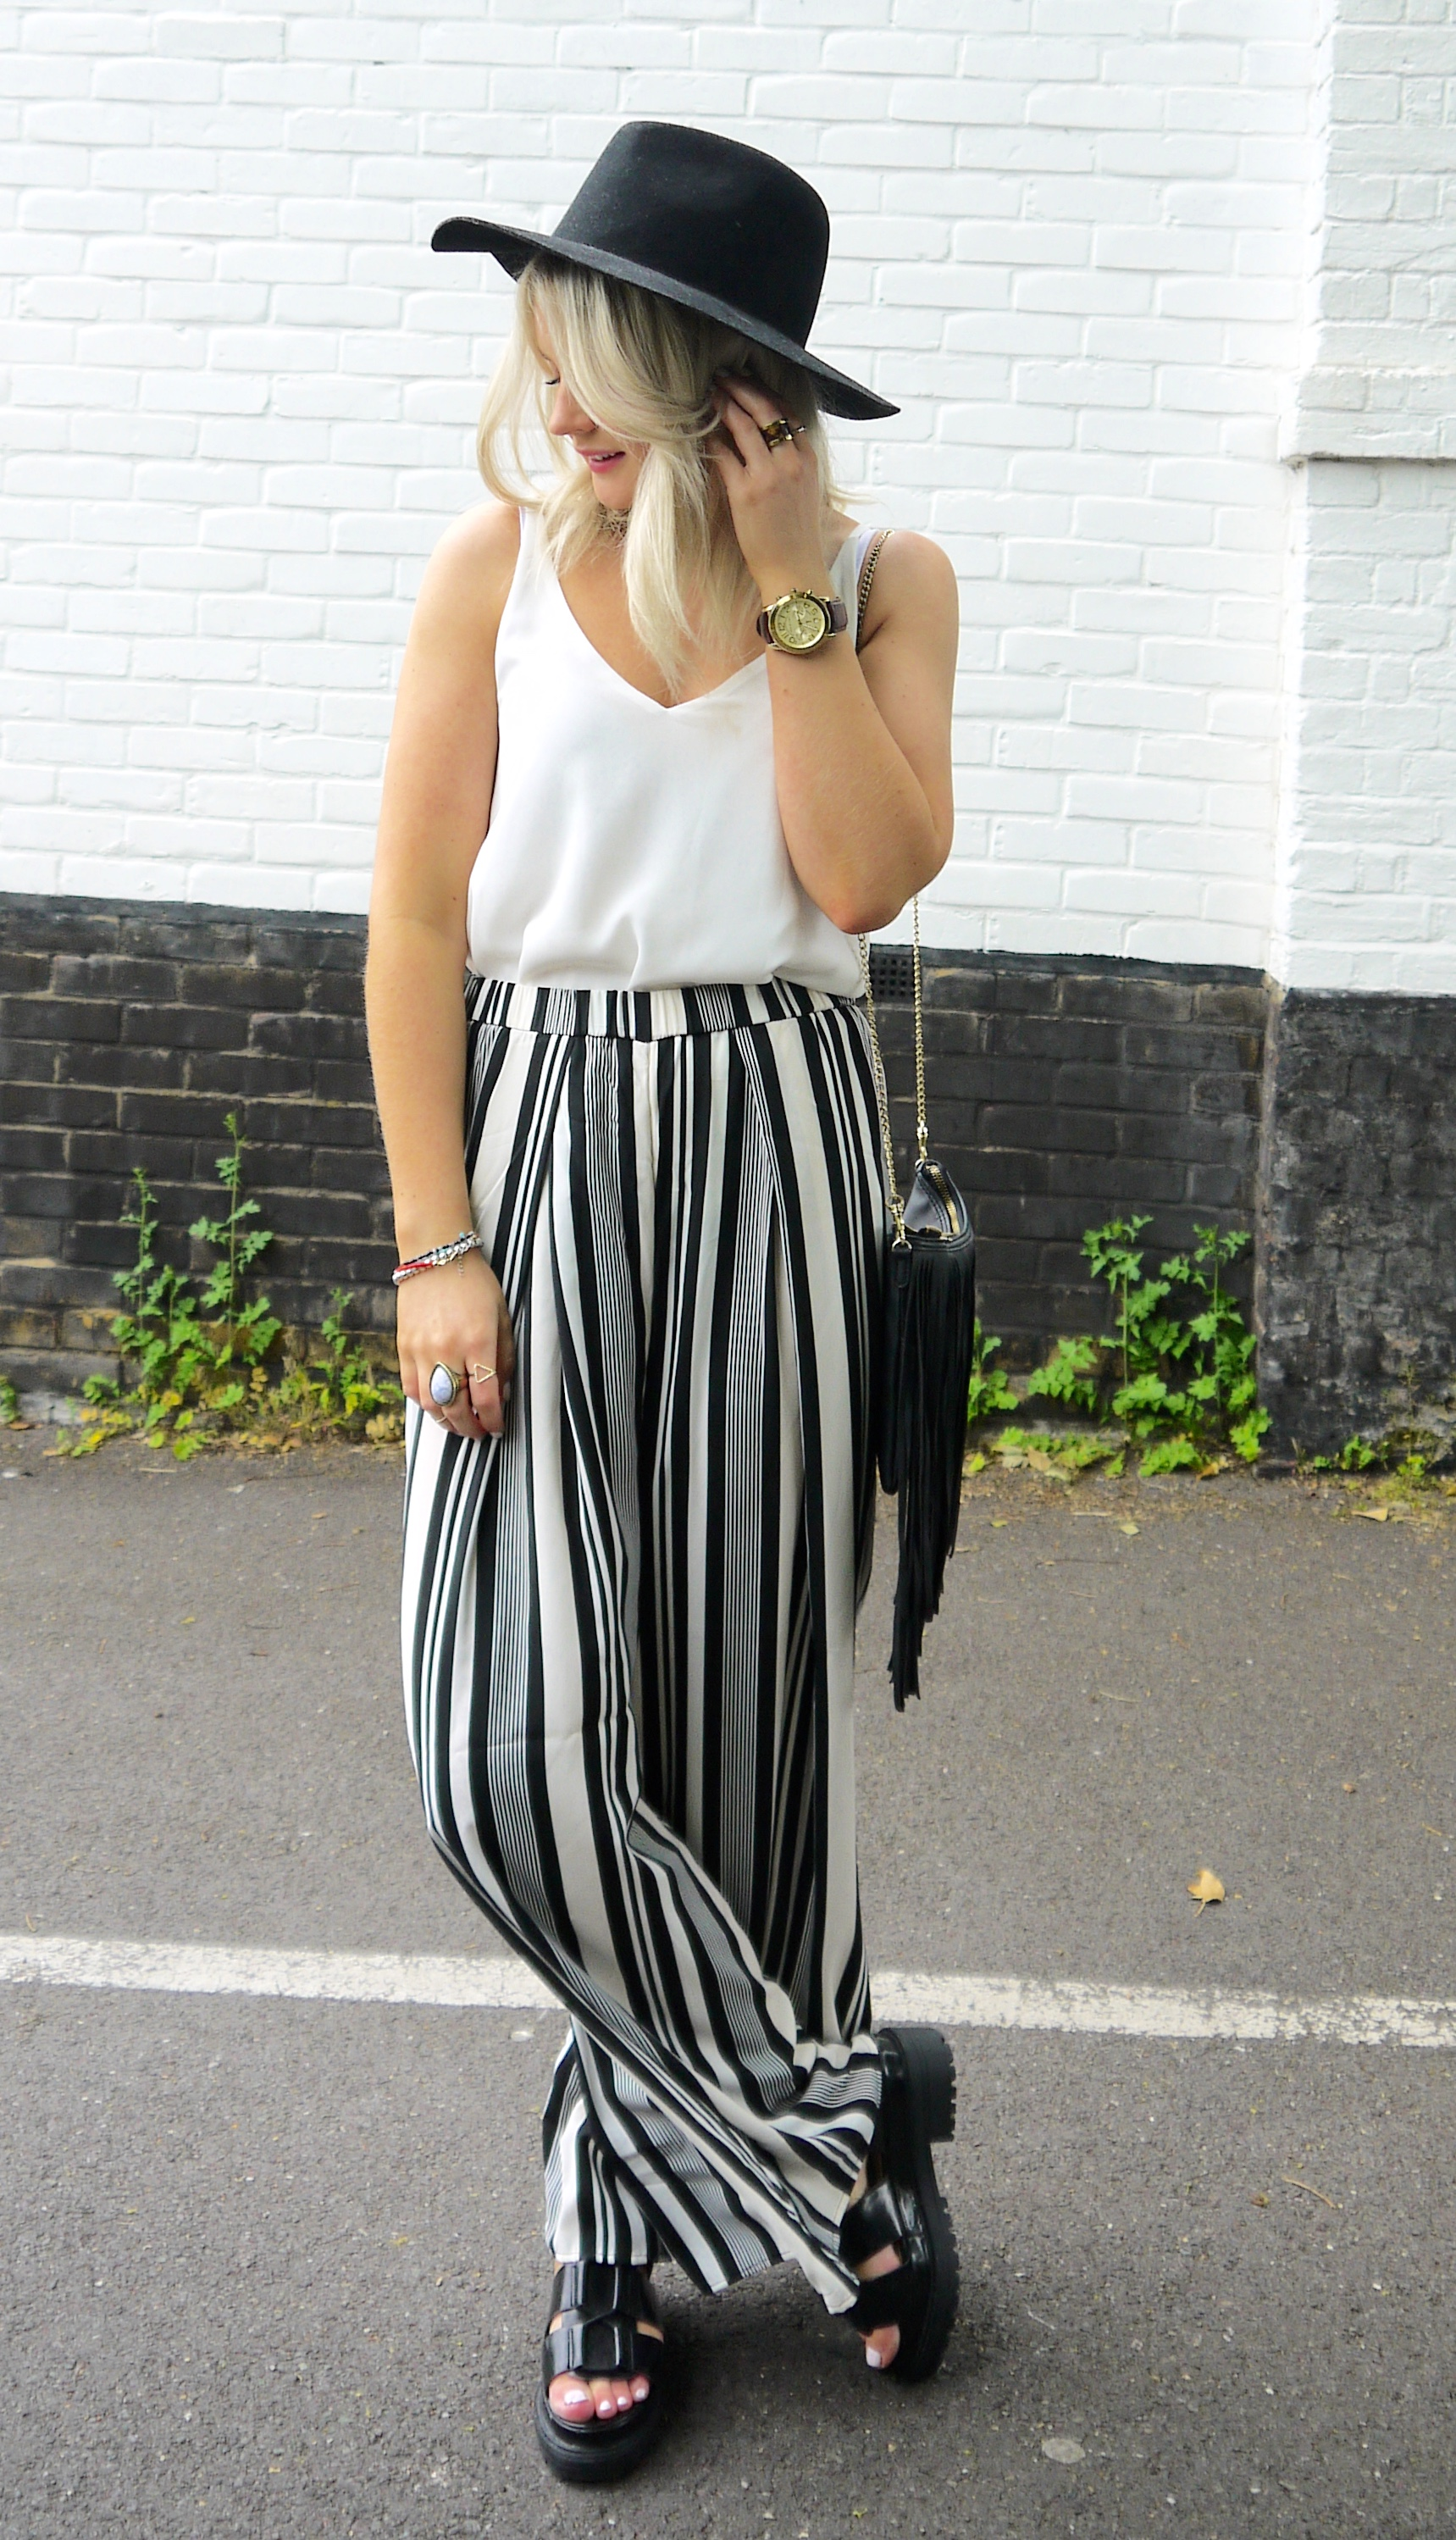 PALAZZO TROUSERS, HOW TO WEAR PALAZZO PANTS, STRIPE PALAZZO PANTS, MONOCHROME, BLACK AND WHITE,LAURAS LITTLE LOCKET, LAURA BYRNES